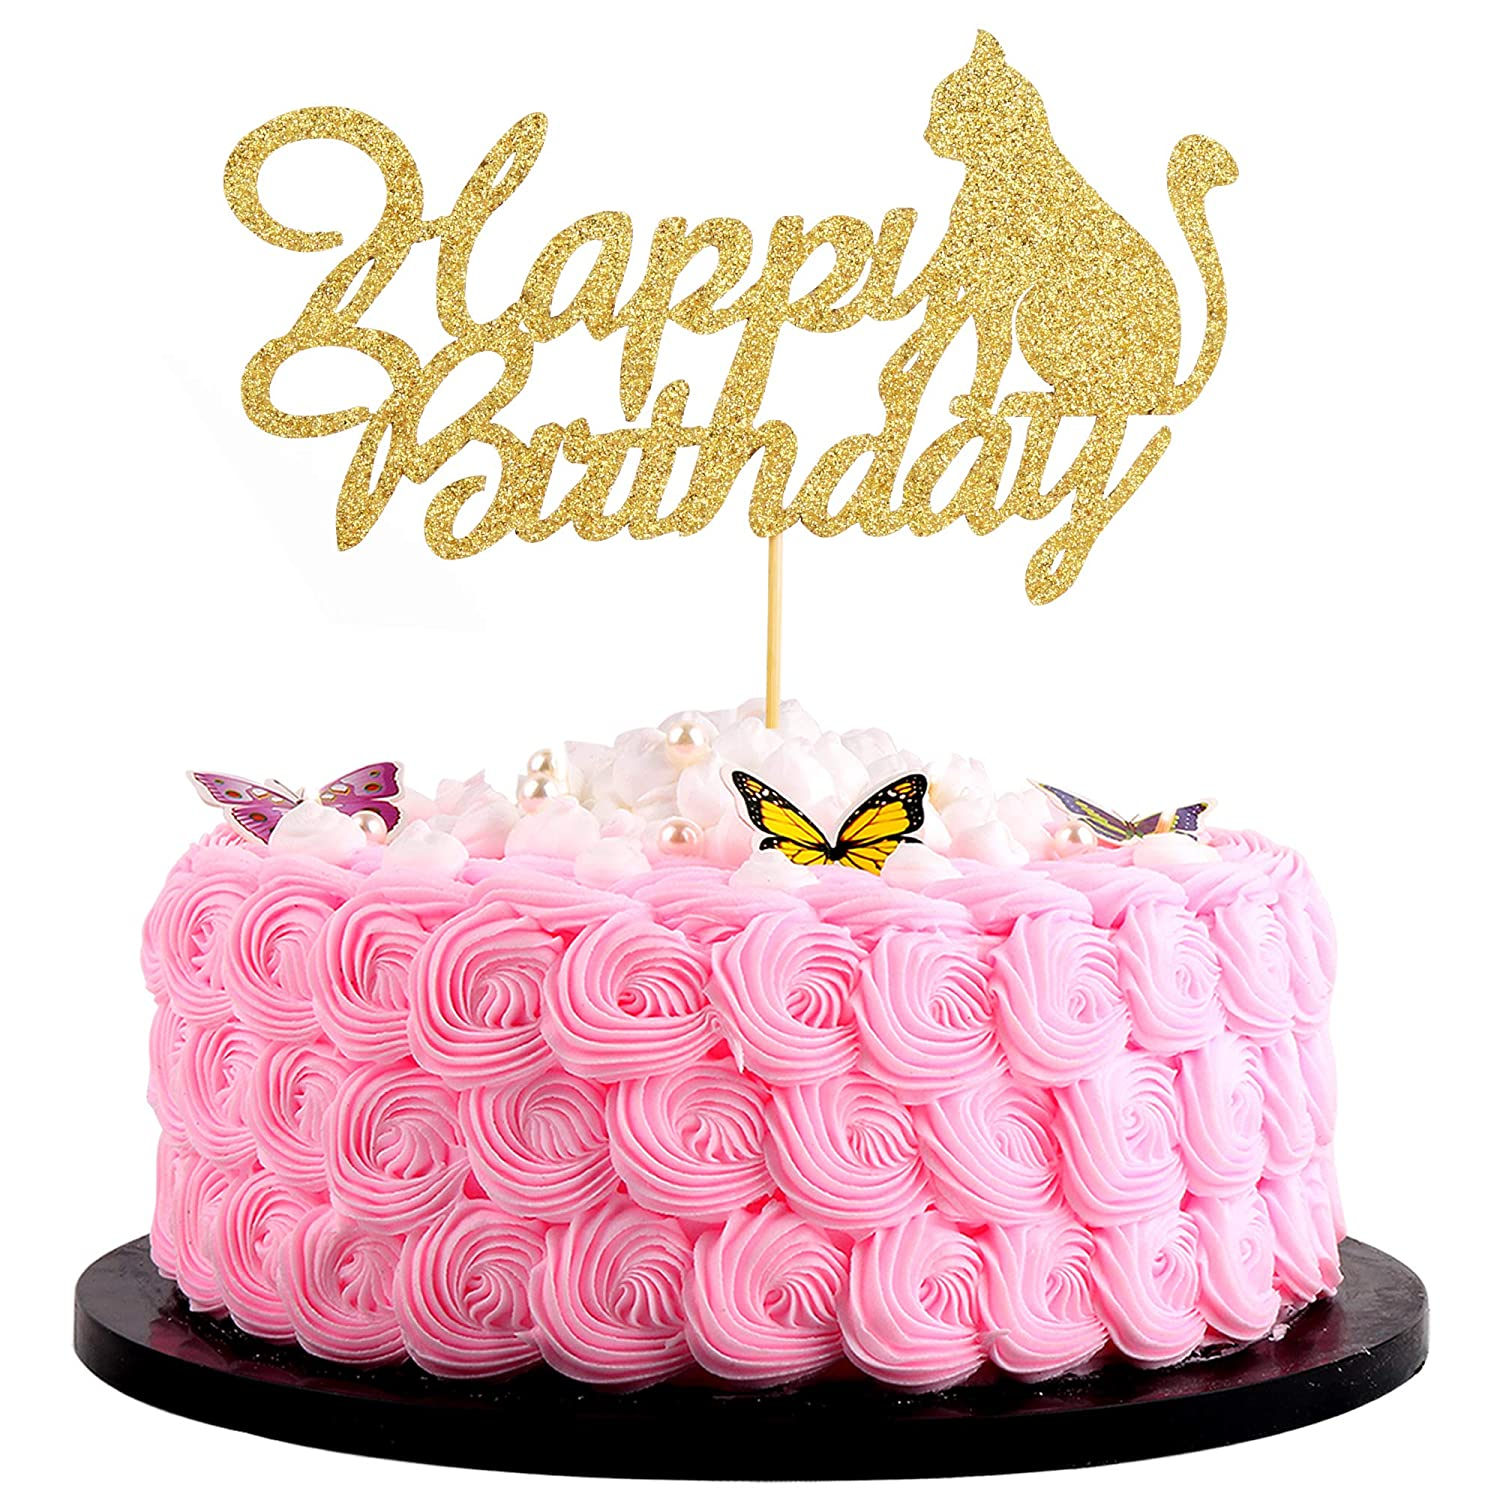 Marvelous Artczlay Happy Birthday Cake Topper Golden Flash Cat Birthday Personalised Birthday Cards Paralily Jamesorg